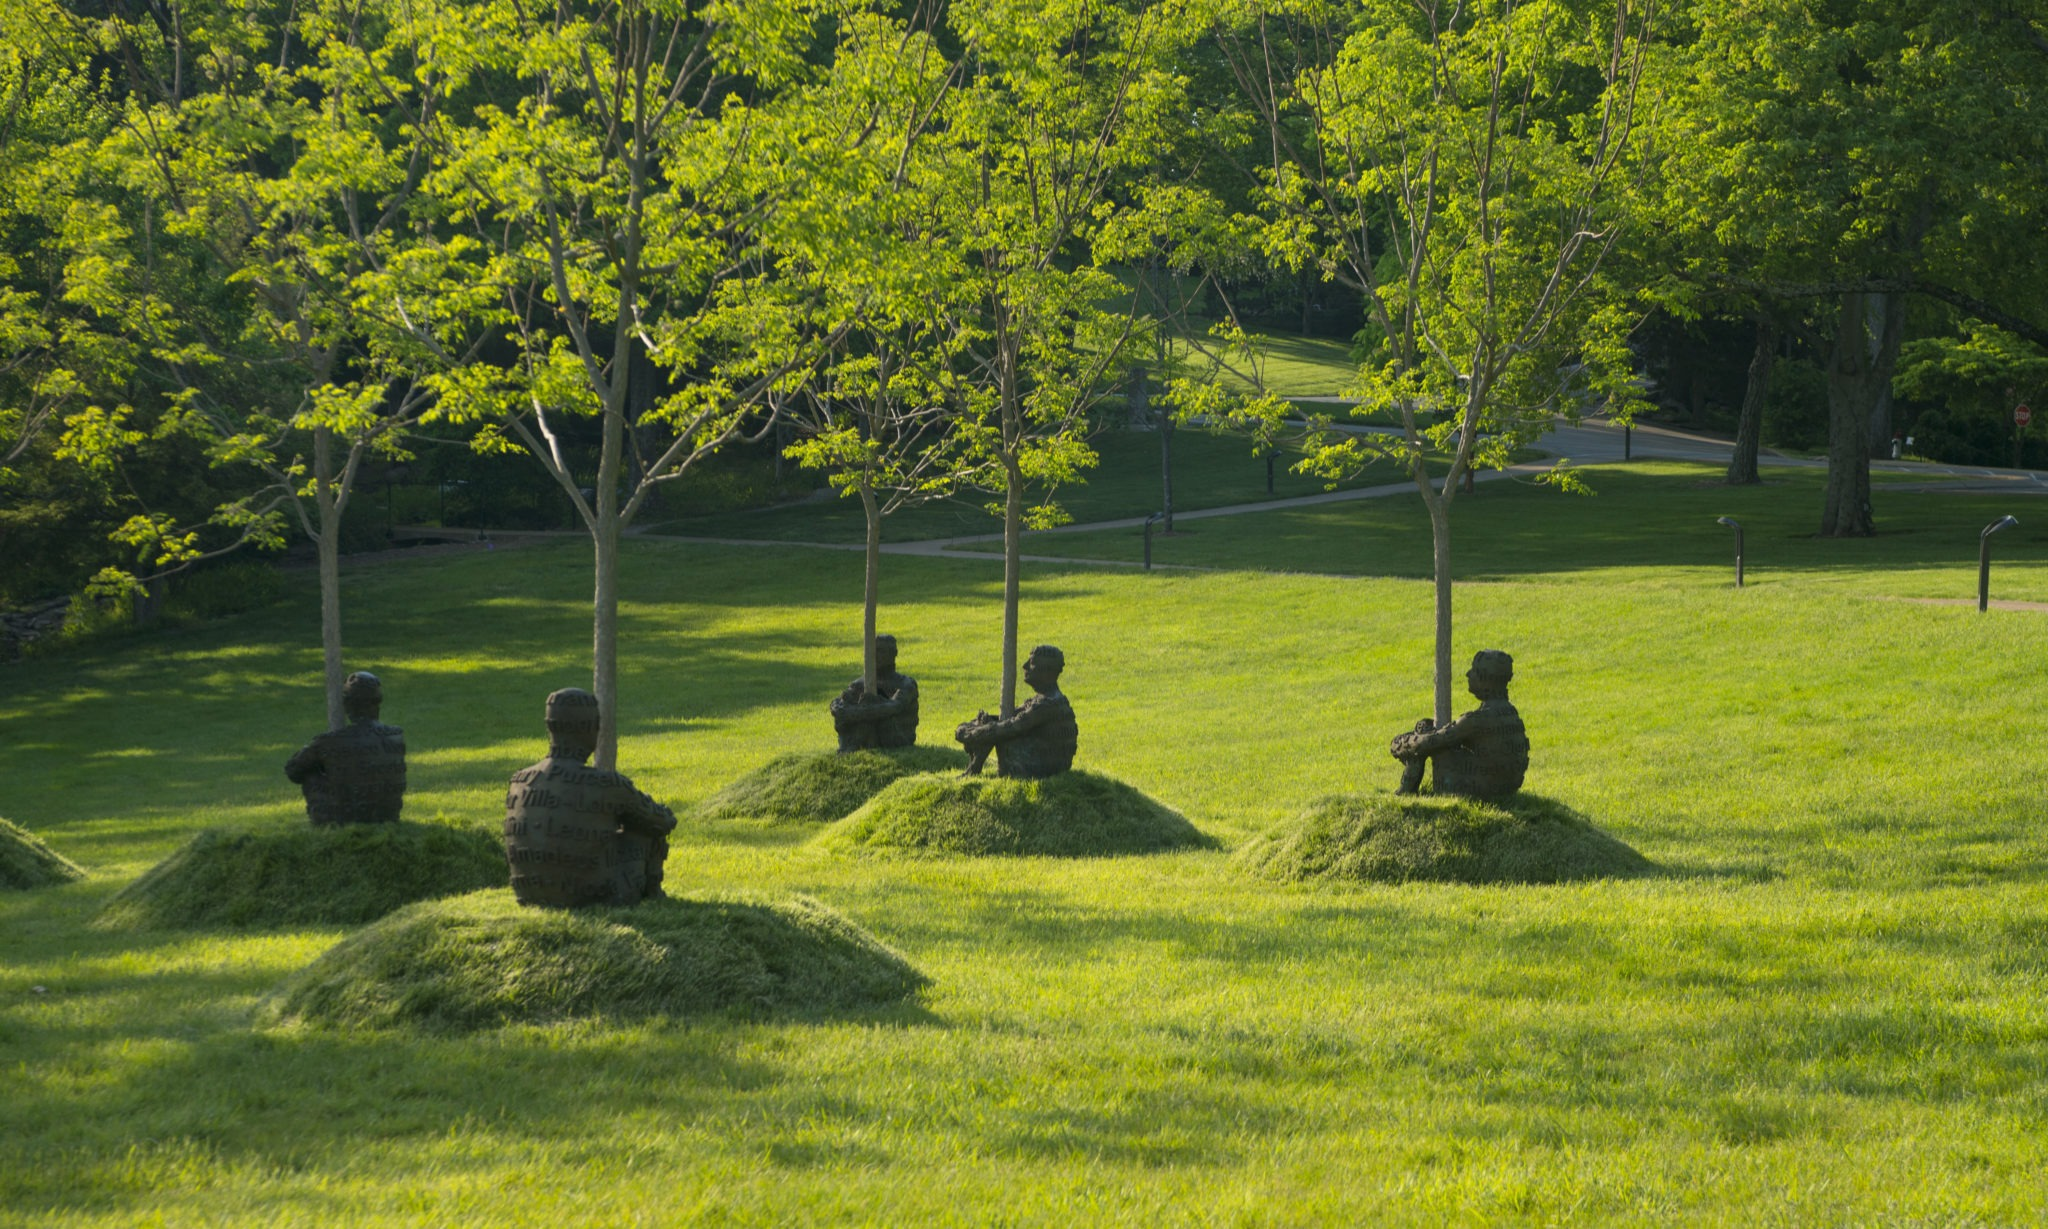 THE HEART OF TREES 2007, Bronze (7 elements), 99 x 66 x 99 cm (each), 150 Kg each: © Jaume Plensa. Courtesy Galerie Lelong, New York